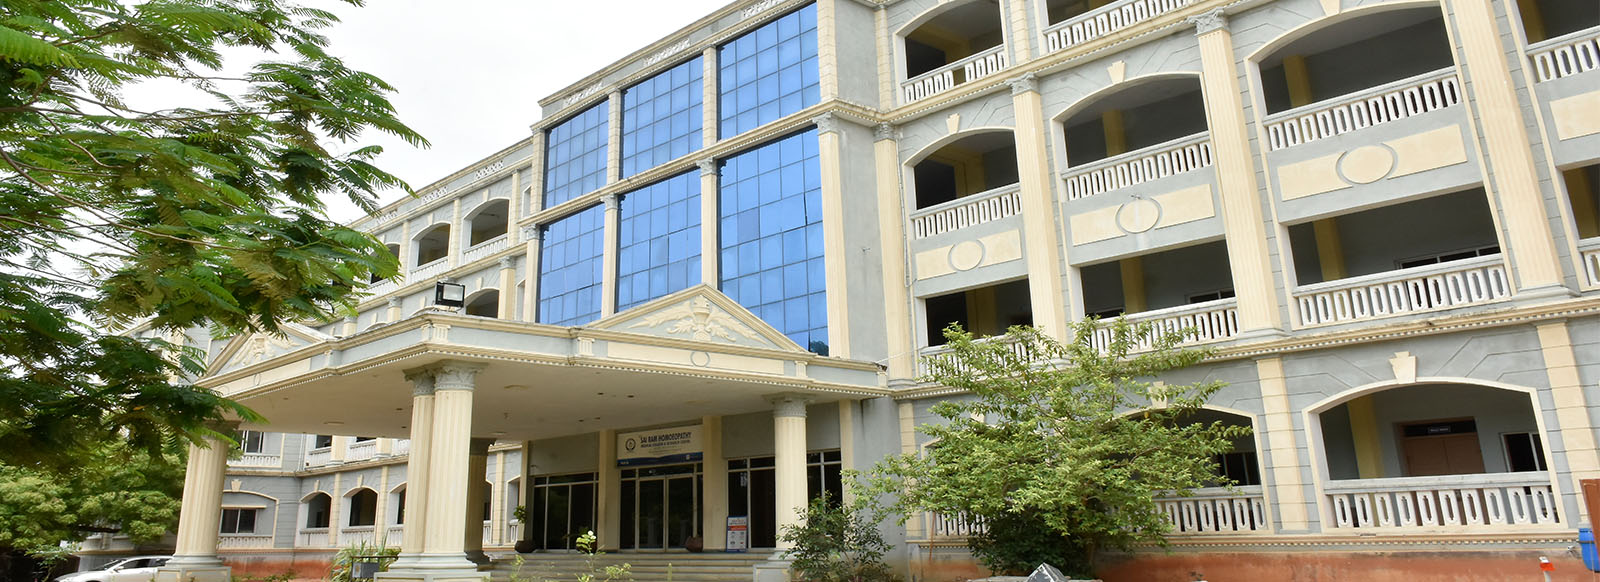 Sri Sairam Homoeopathy Medical College and Research Centre, Chennai Image